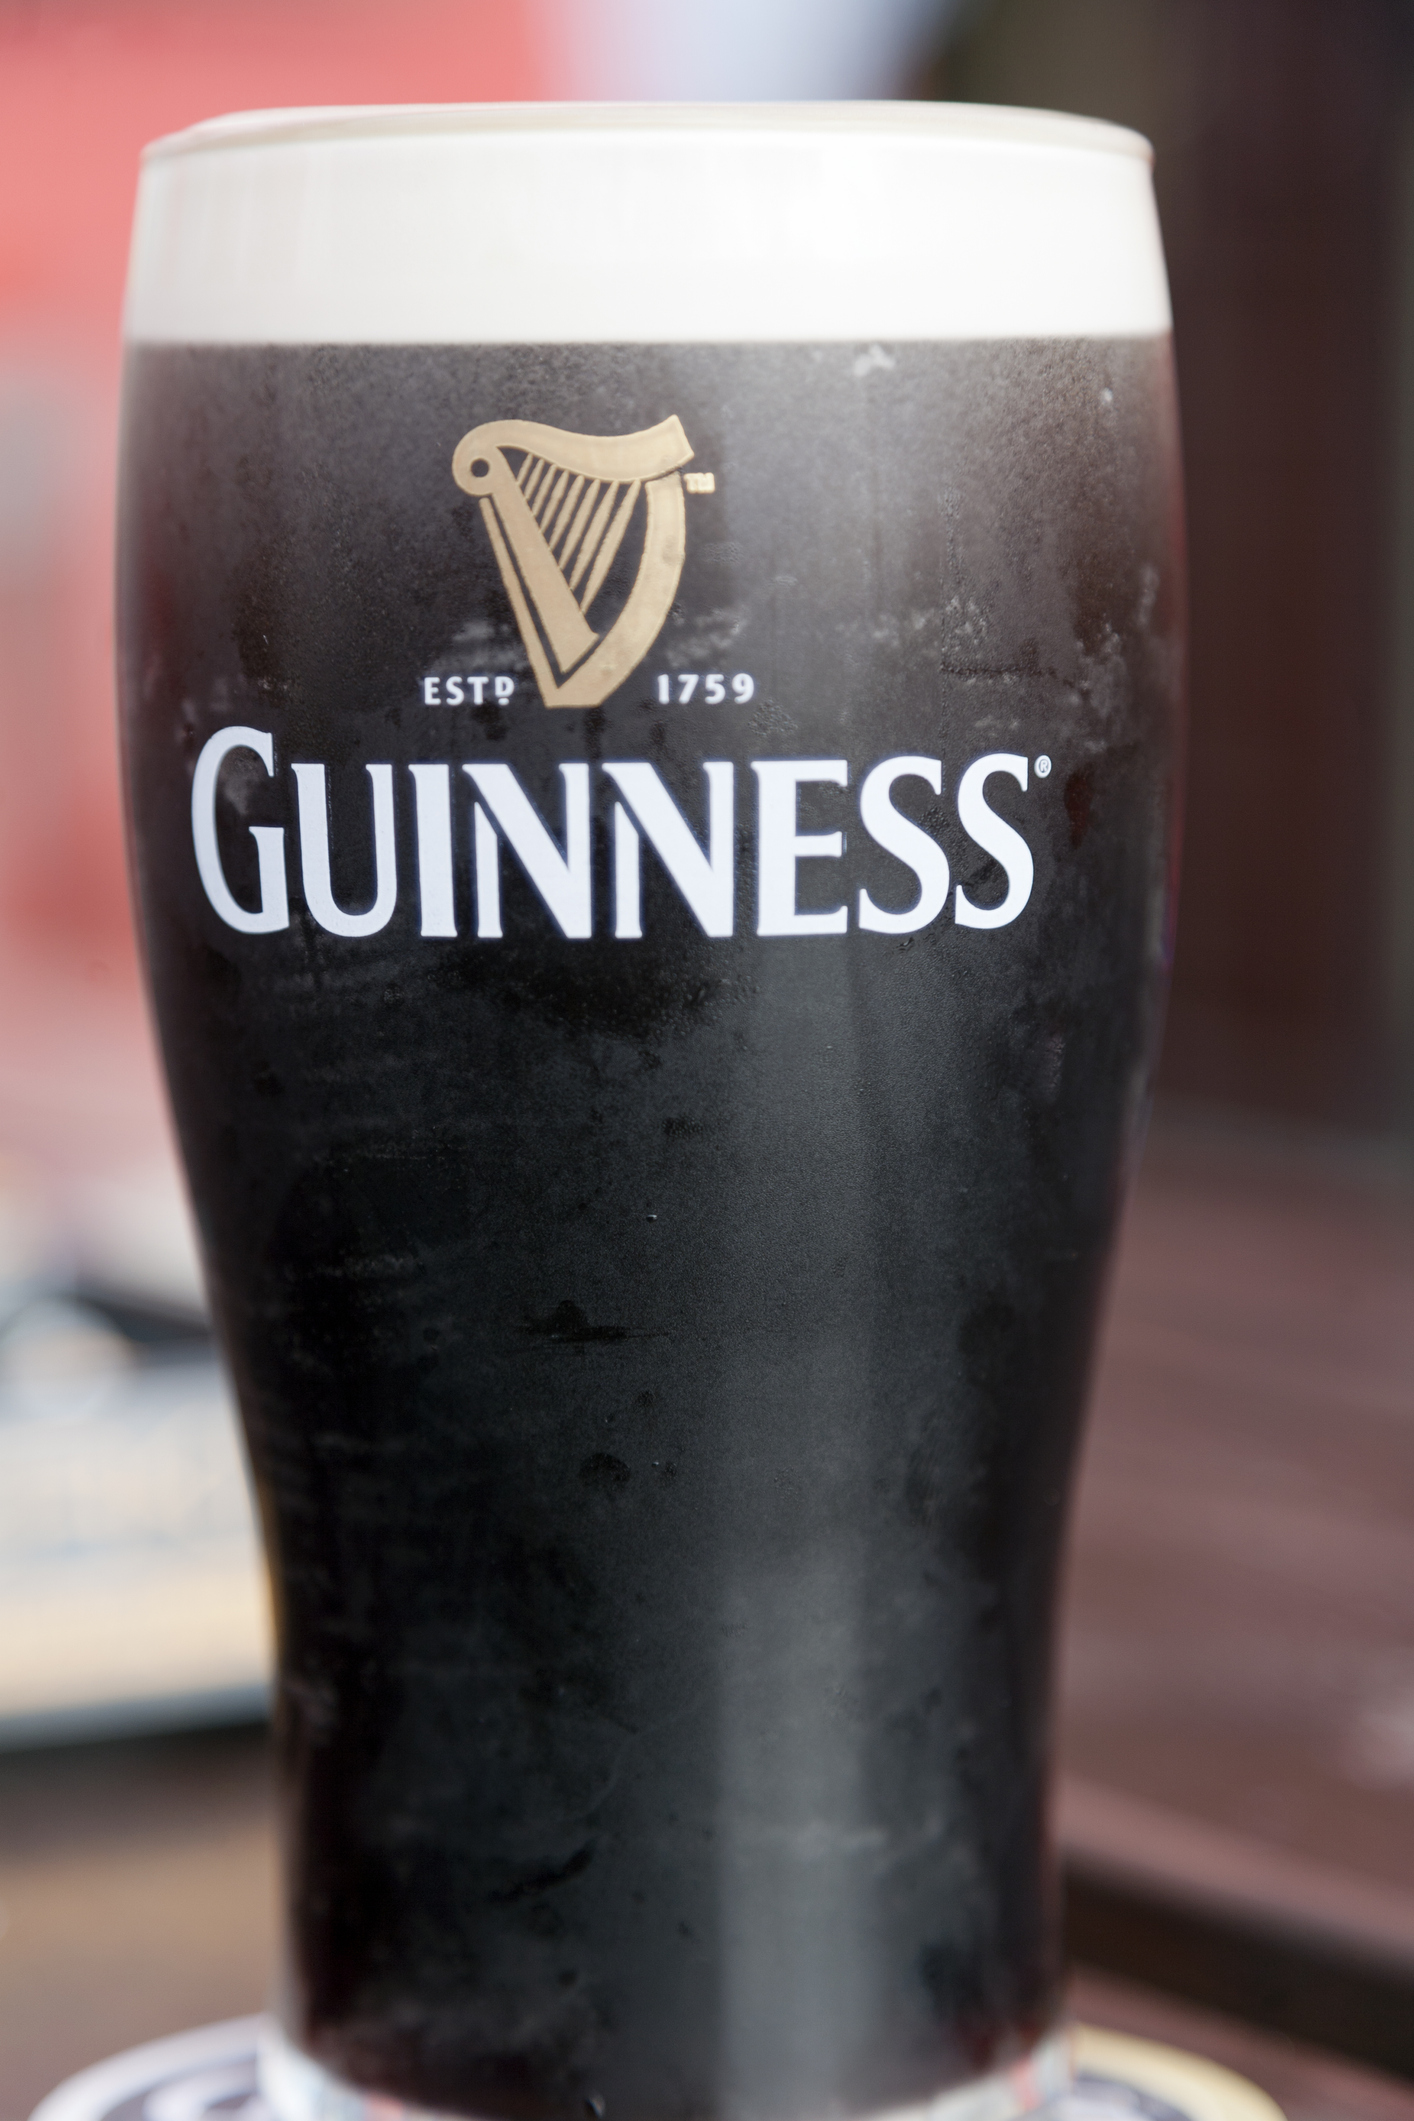 Guinness makes more than just stouts.